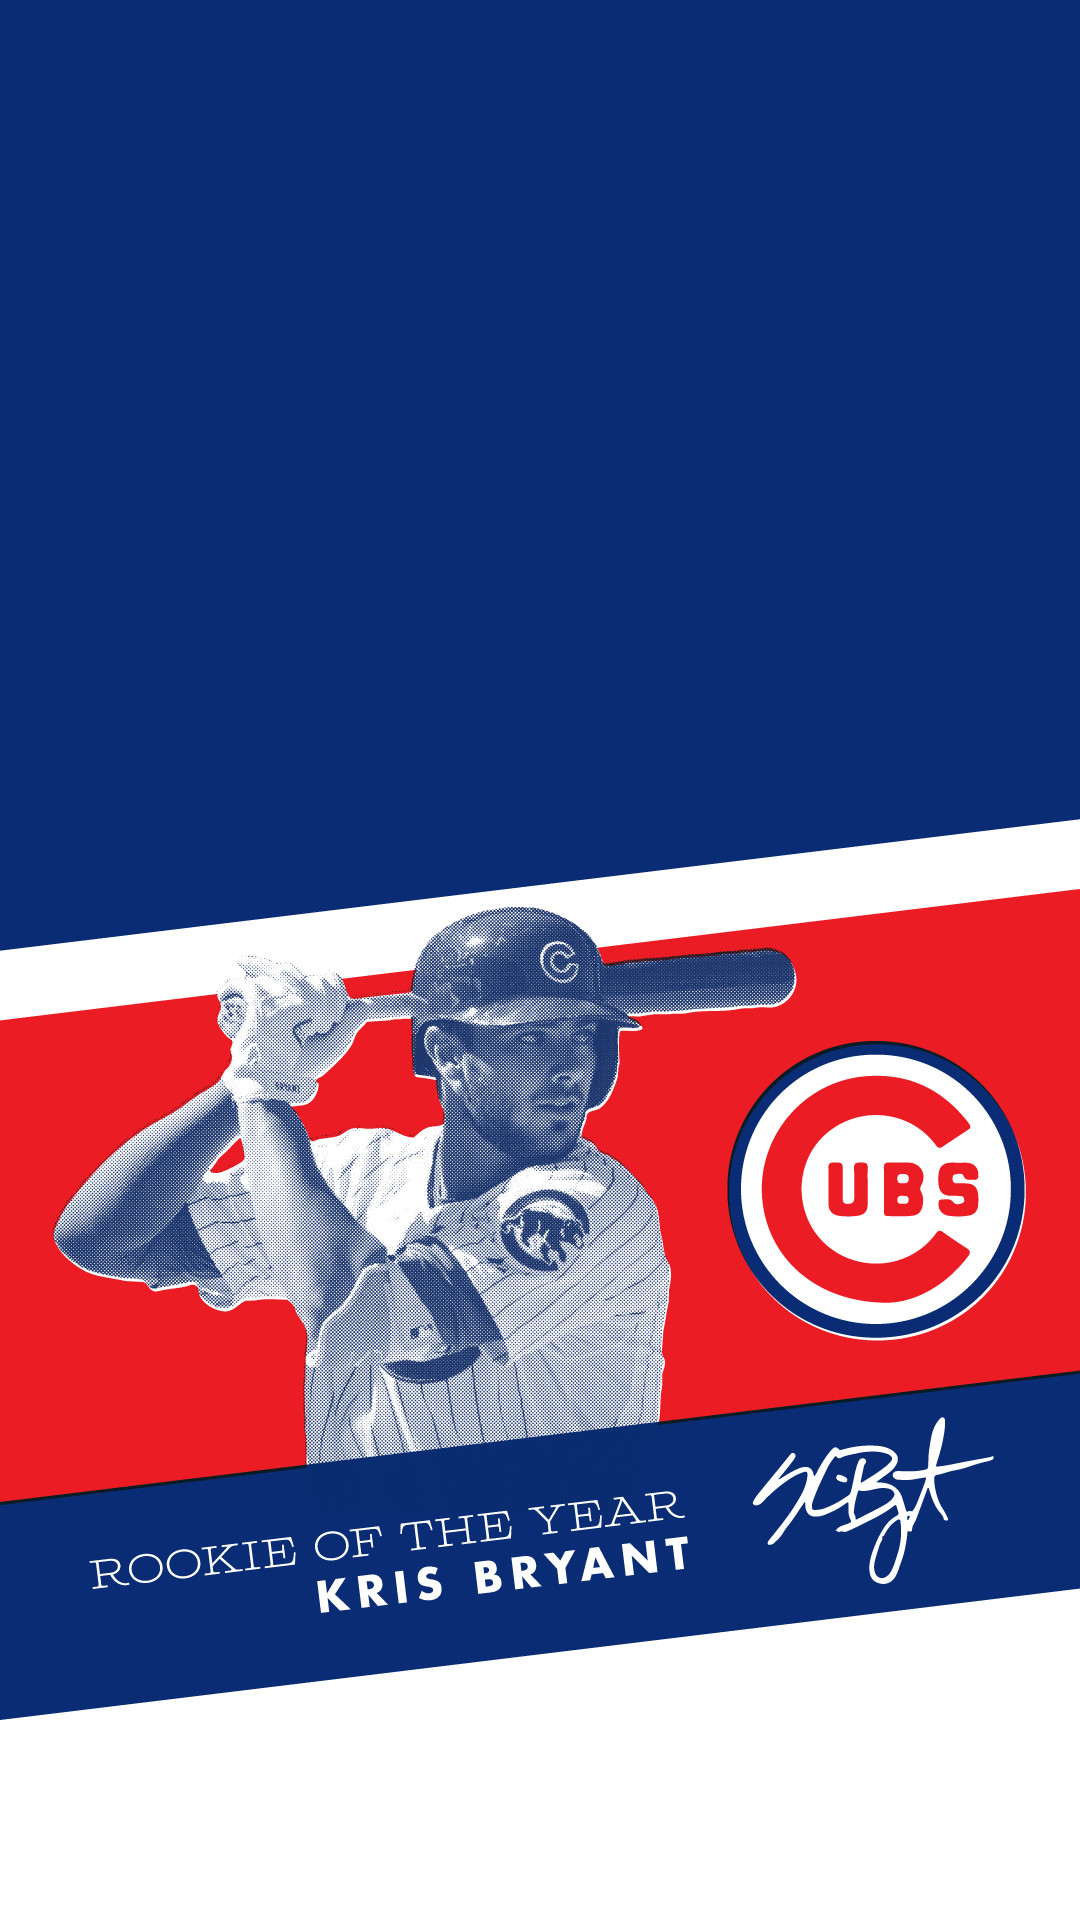 Kris Bryant Rookie of the Year, …